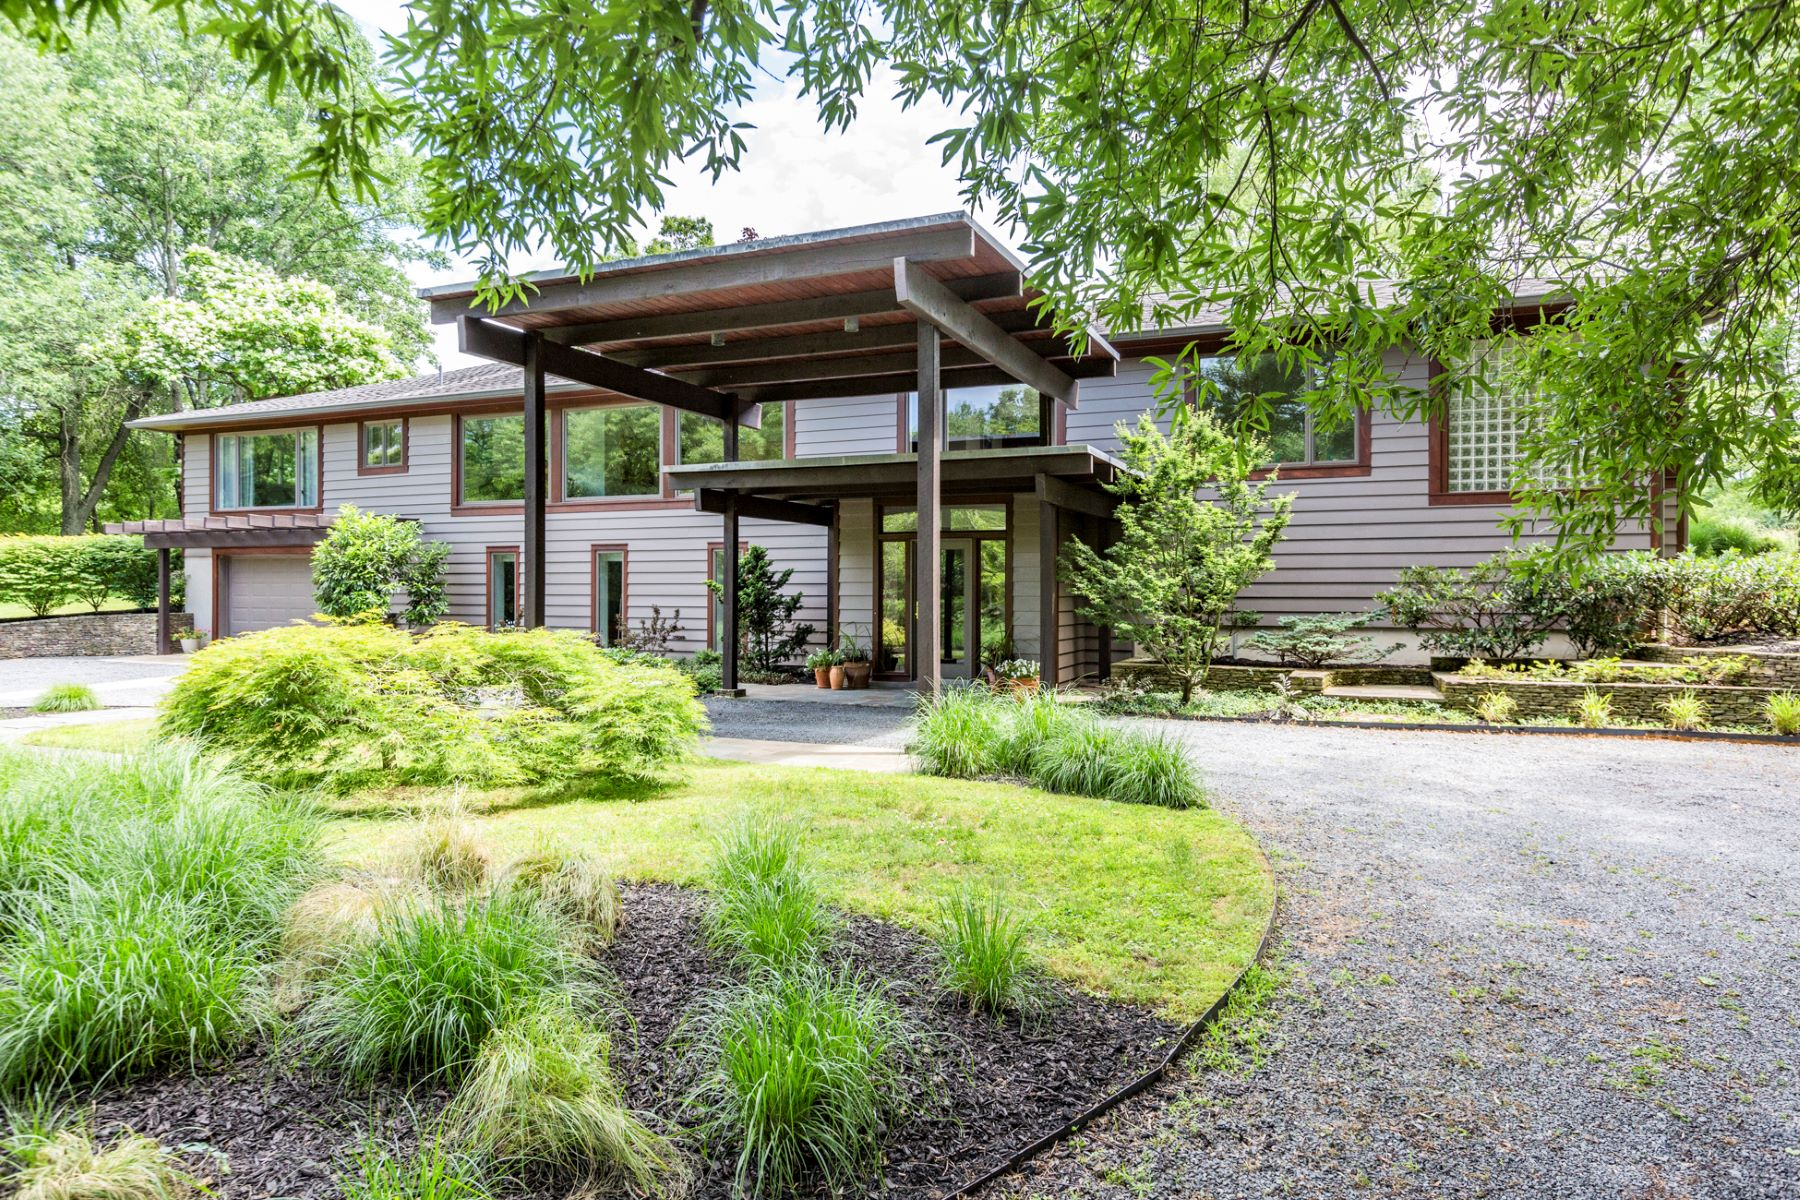 Property for Sale at Framing It Just Right: Modern With Magical Views 13 Aunt Molly Road, Hopewell, New Jersey 08525 United States